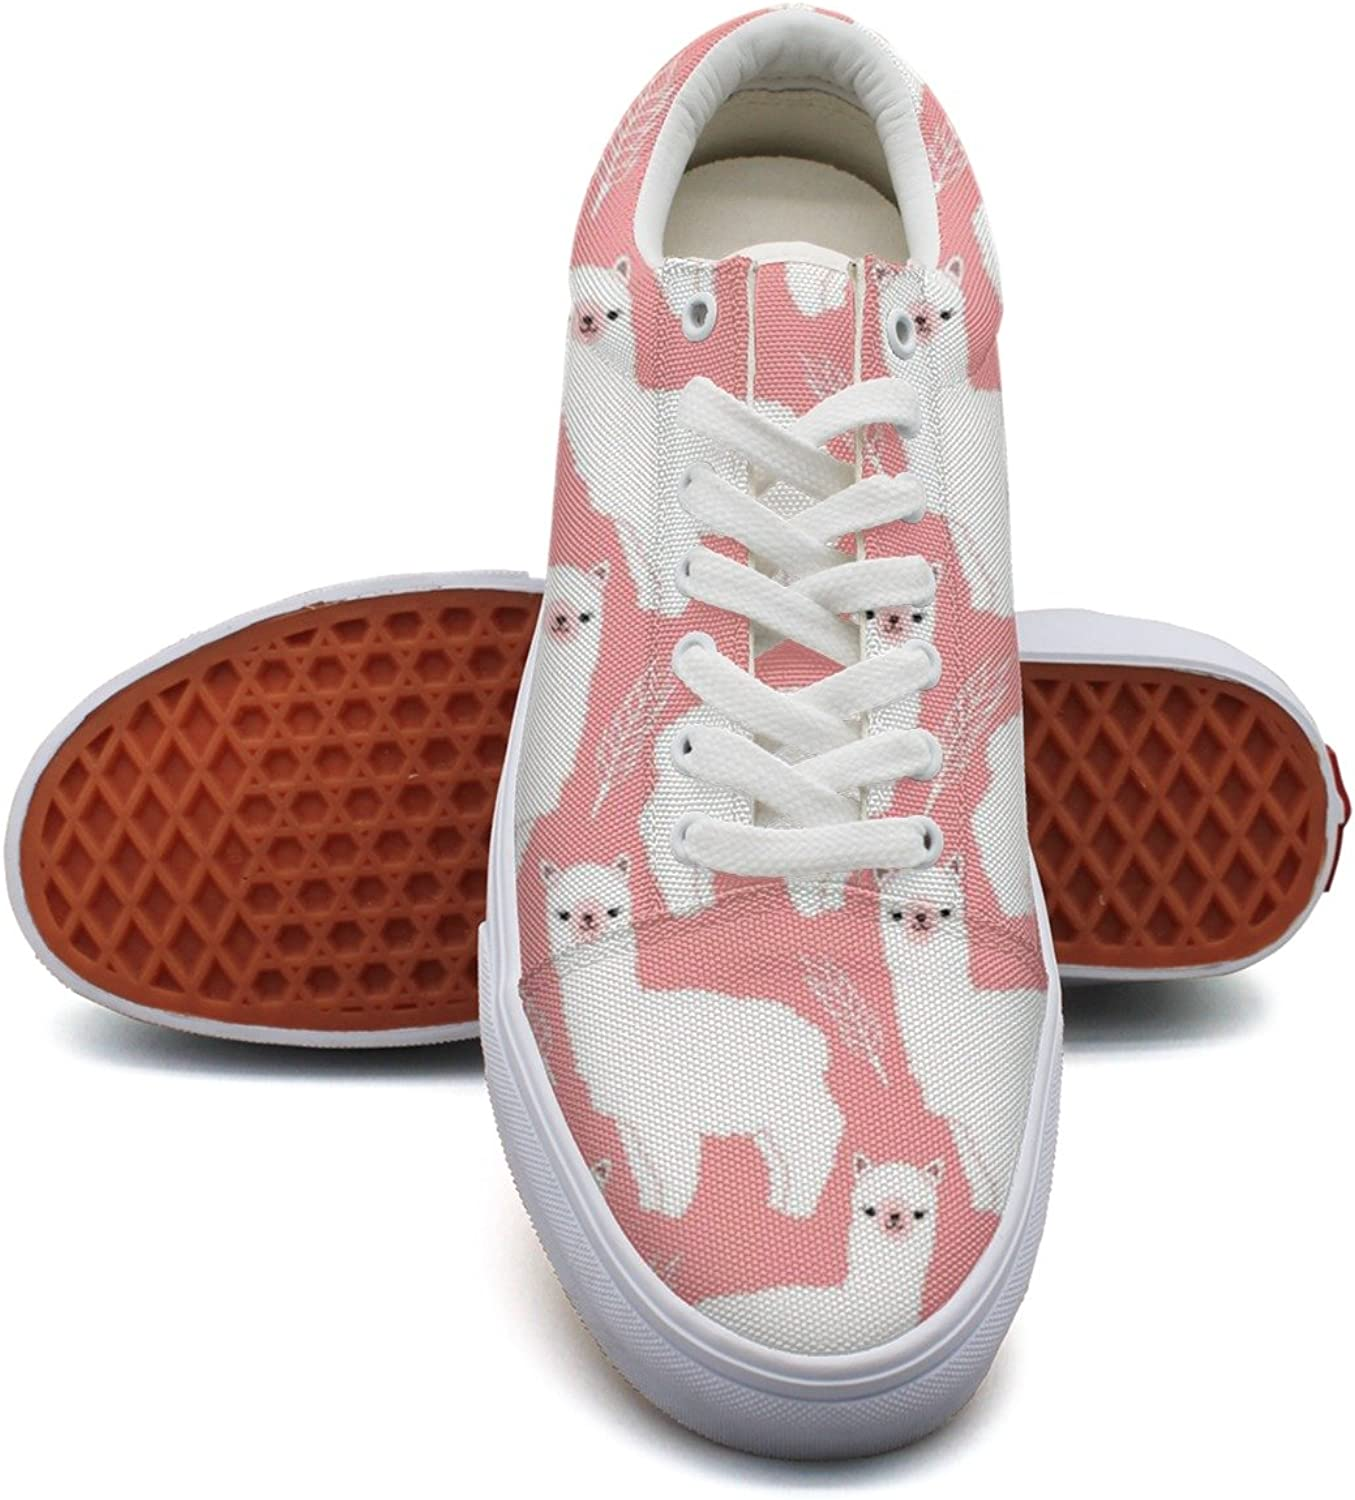 Pink Fluffy Llama Alpacas Fashion Canvas Sneaker For Womns 3D Printed Low Top Walking shoes